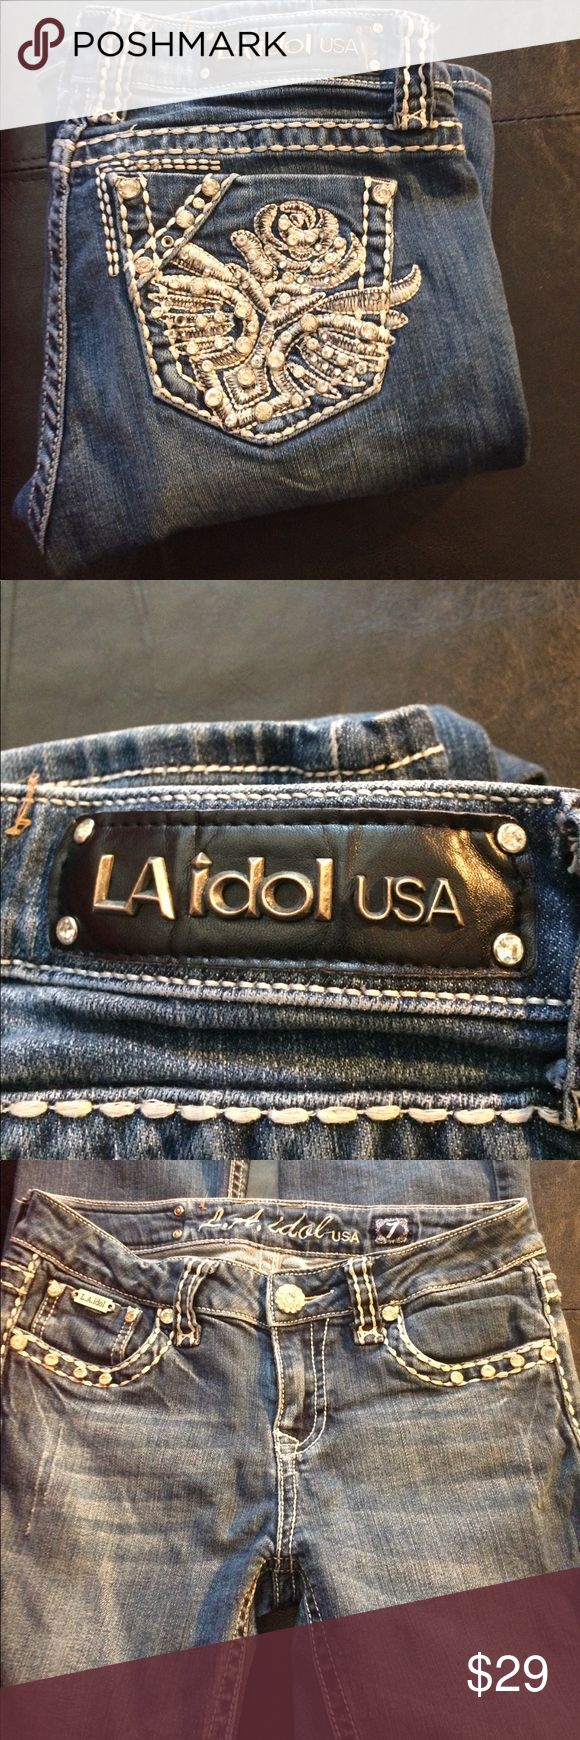 🎉LA Idol USA👖BLING! BLING Sz 7 W30 L34 EUC LA Idol👖 in excellent condition bling bling bling everywhere.  size 7 W30 L34. 97% cotton 3% elastin.  Very cool bling jeans have no marks on them if you want it now it's the time to buy it LA Idol Jeans Straight Leg